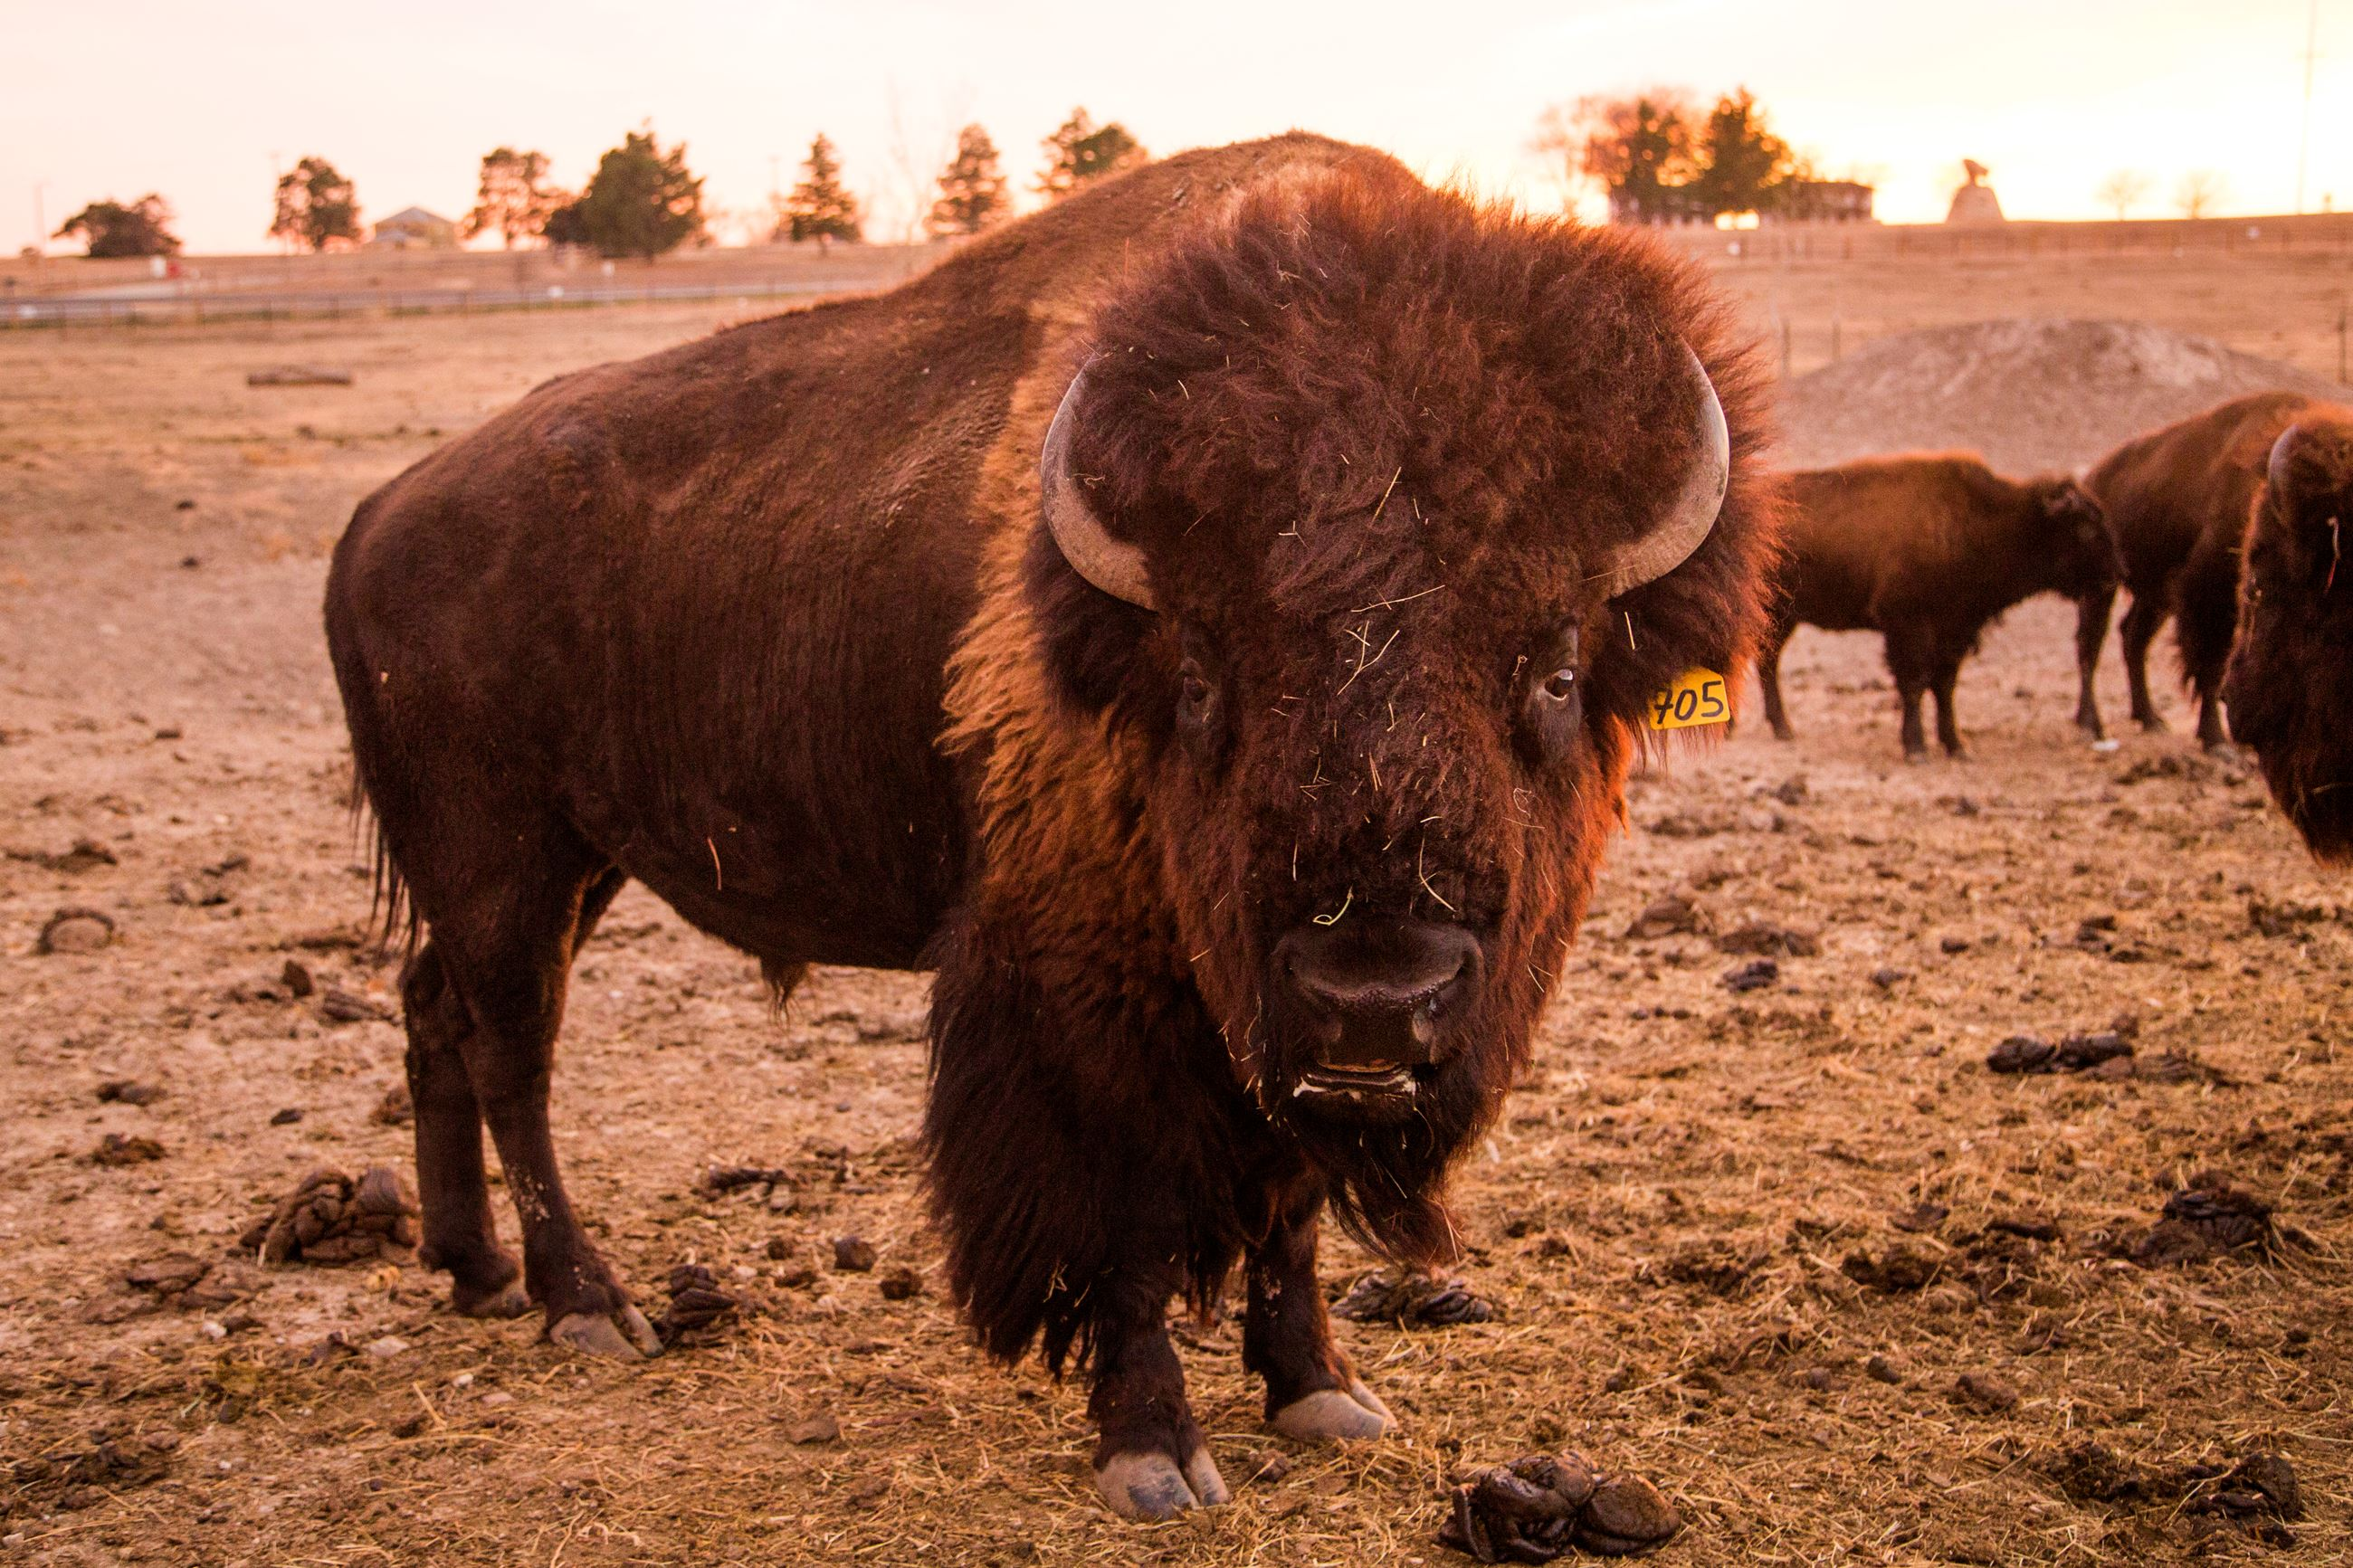 Grown Bison and Two Calves Grazing